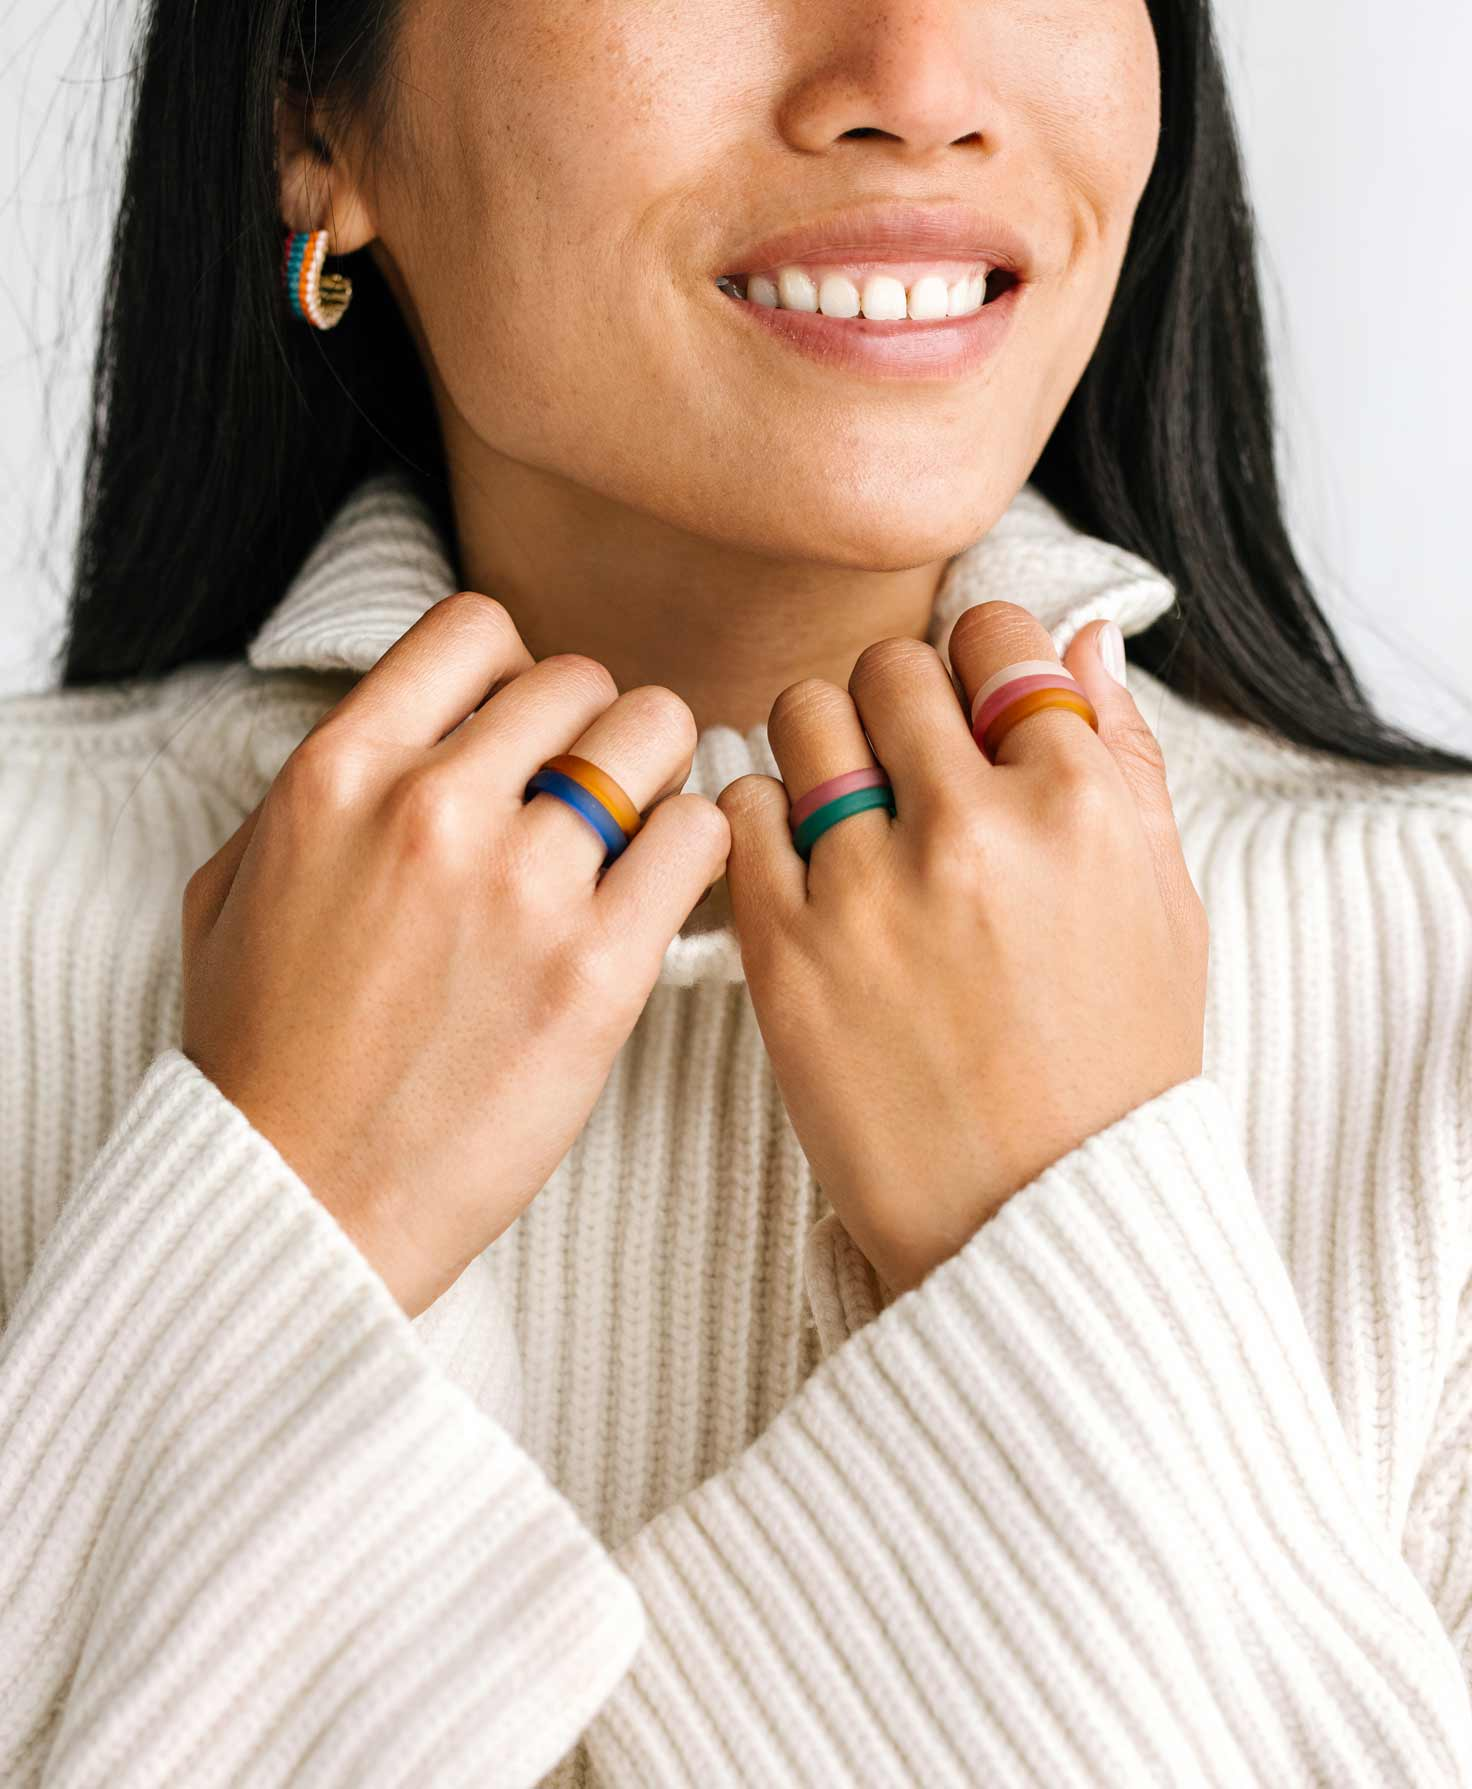 A model wears the Groovy Hoops and a white sweater. On her fingers, she wears an array of rings from the Glass Ring Bar in colors that complement the Groovy Hoops.